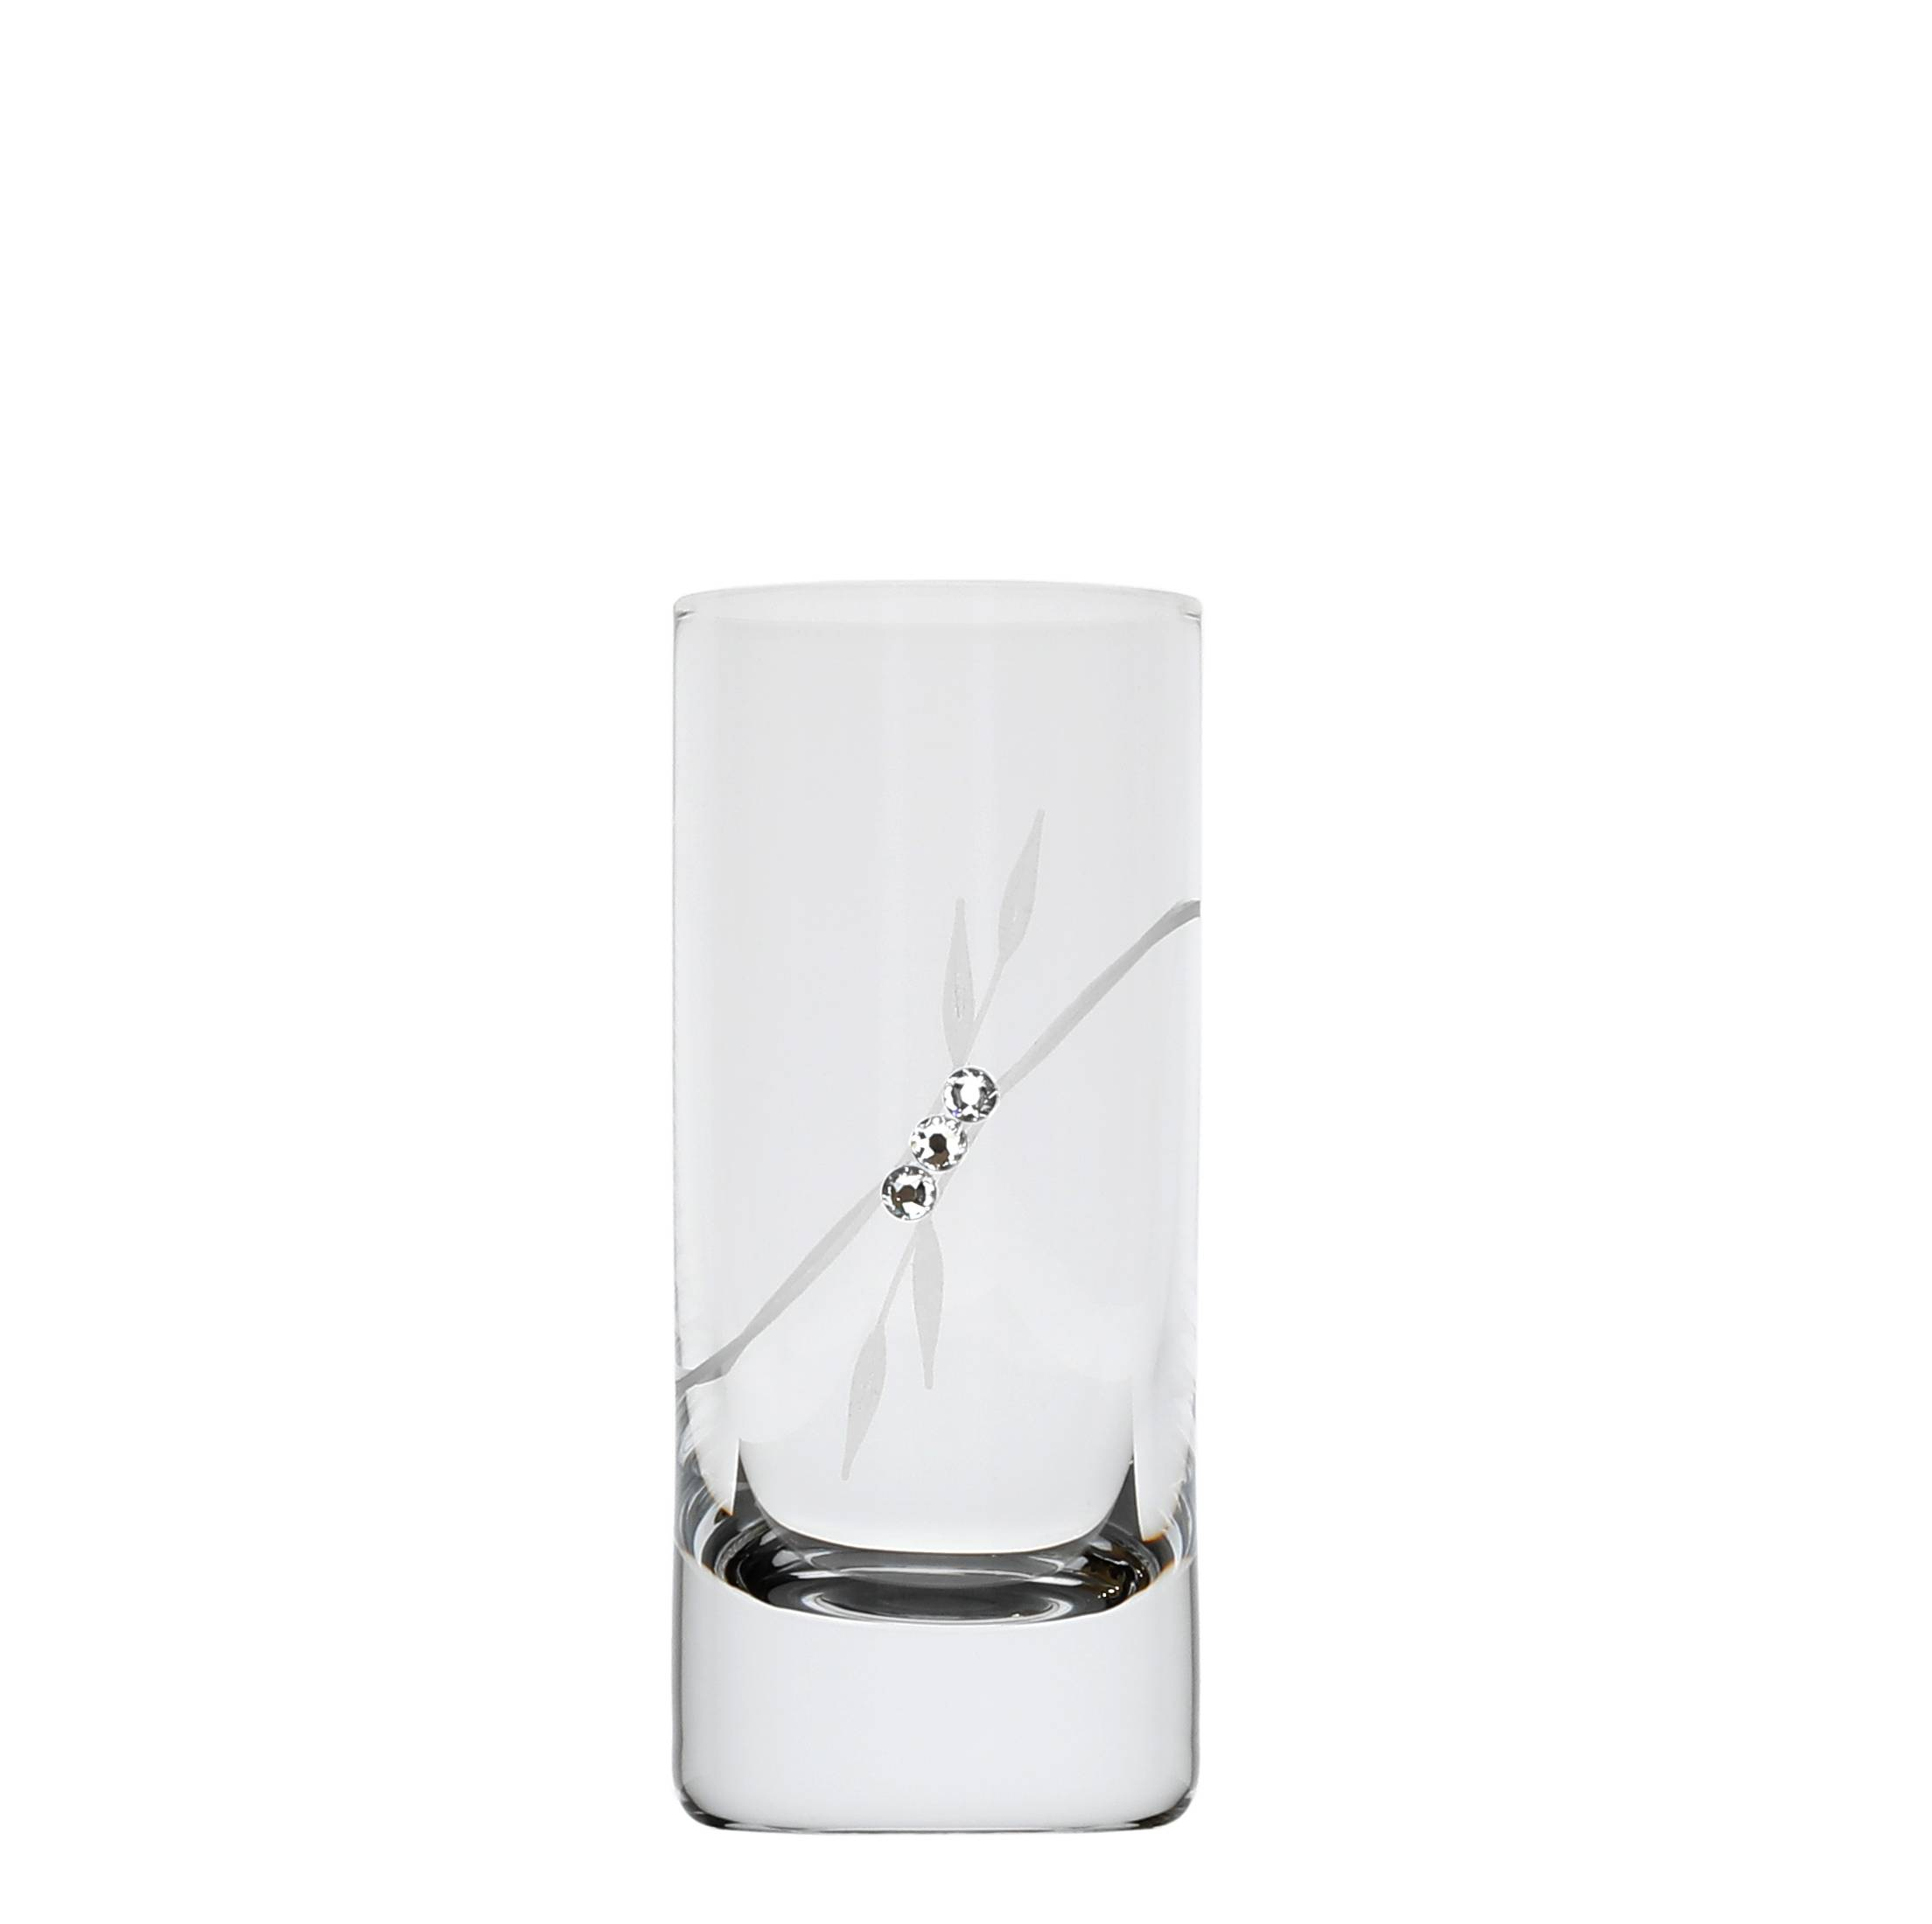 Vodka Shot 70 ml 139 swarovski Crystals (6KS)